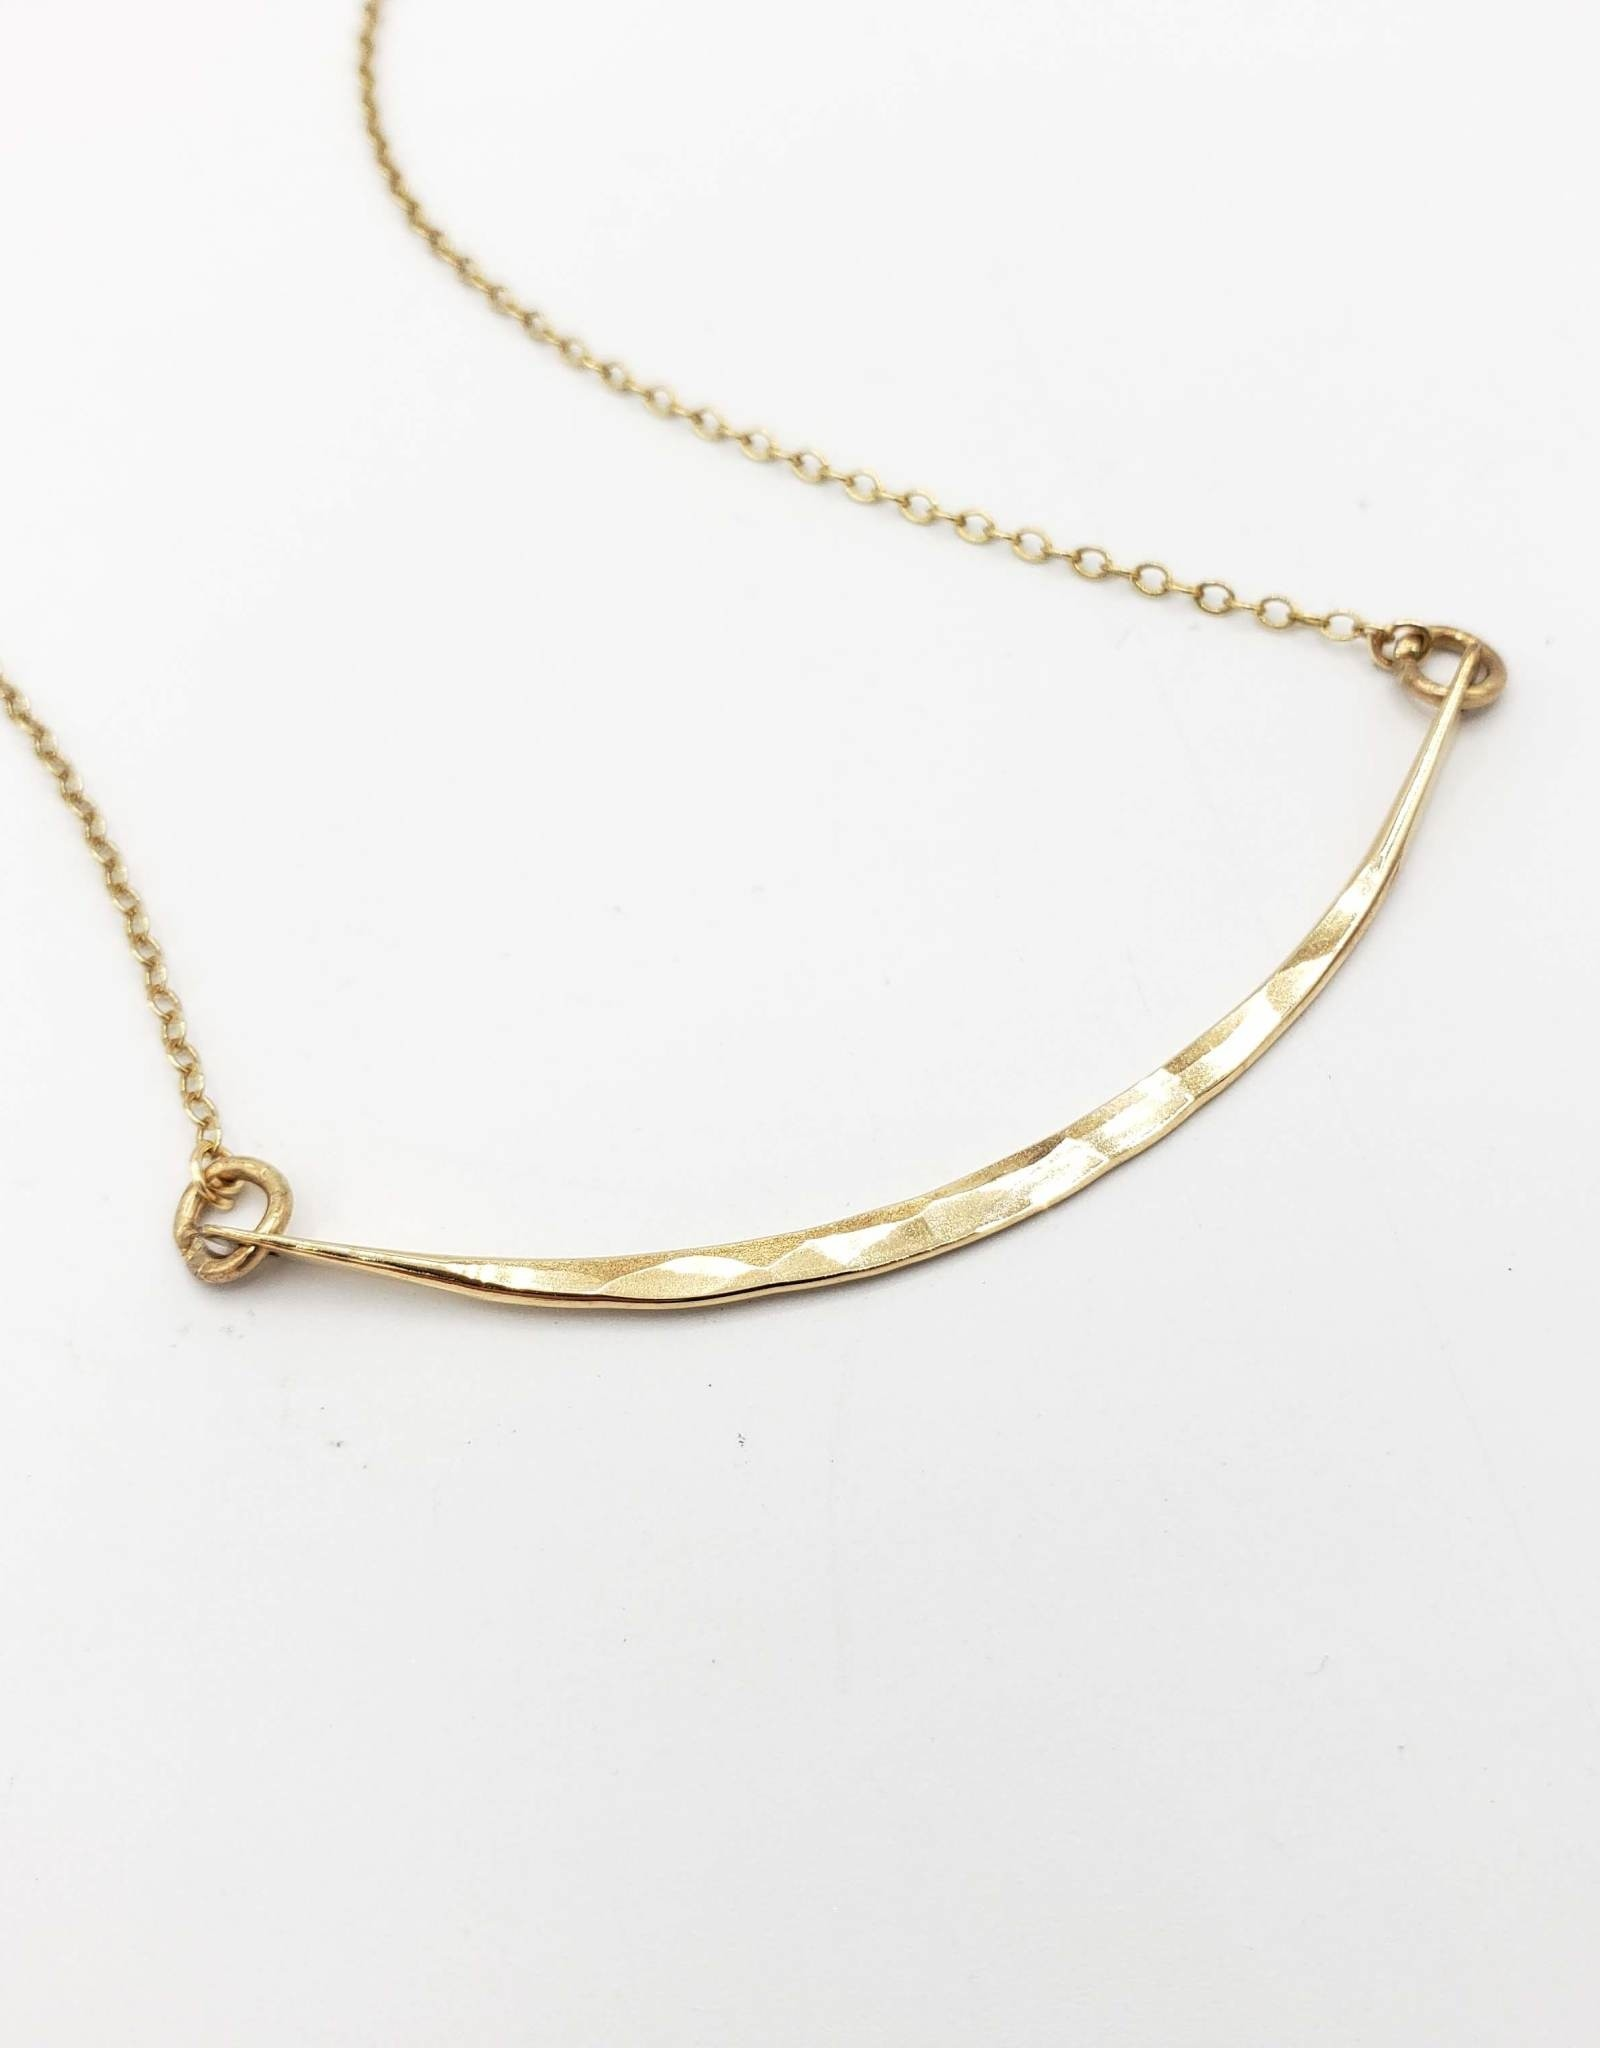 Redux Hammered Curved Bar, Gold Fill